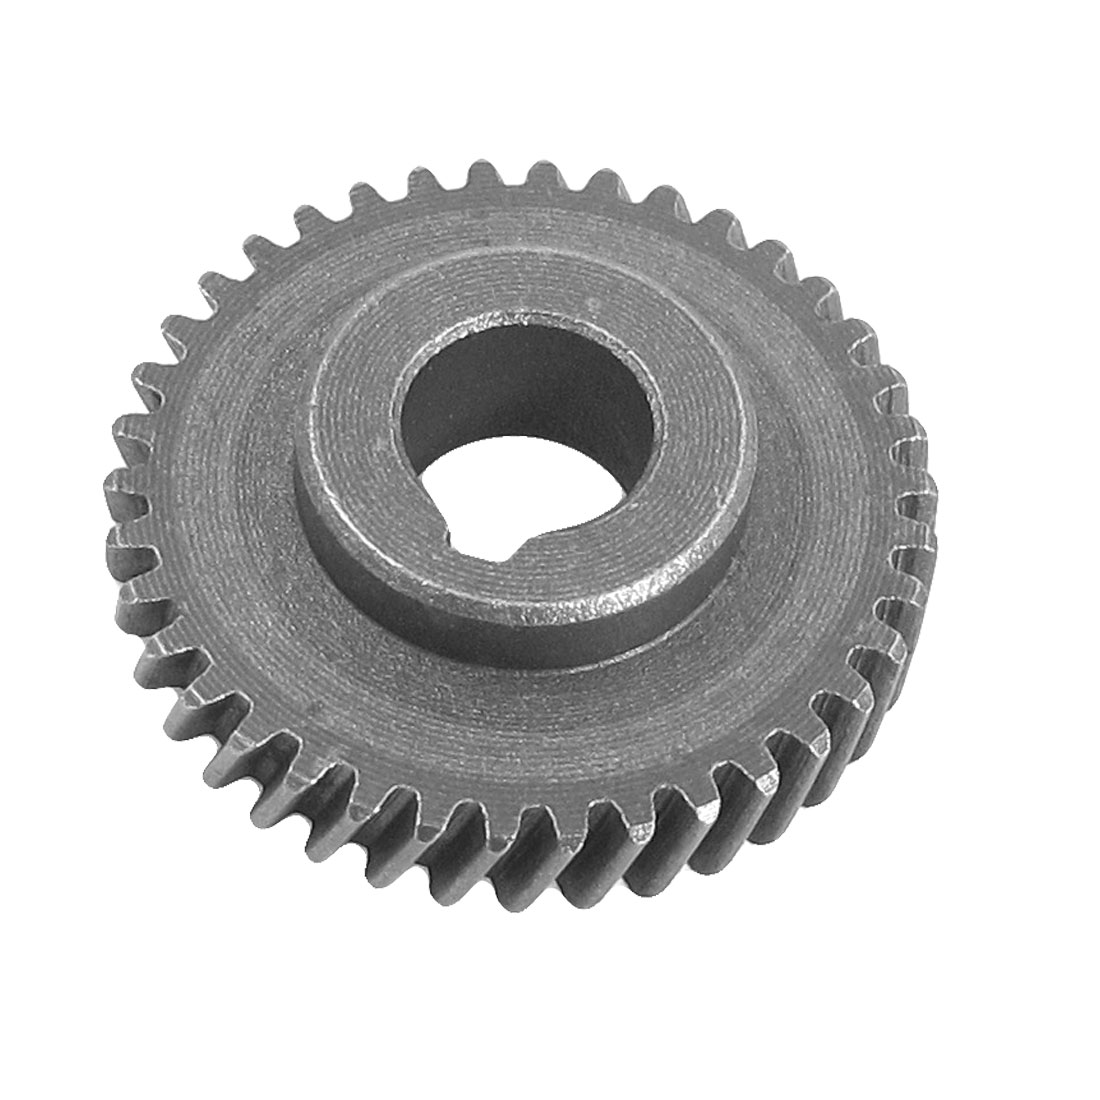 Replacement Repairing Spare Parts Metal Gear Wheel 10mm x 40mm